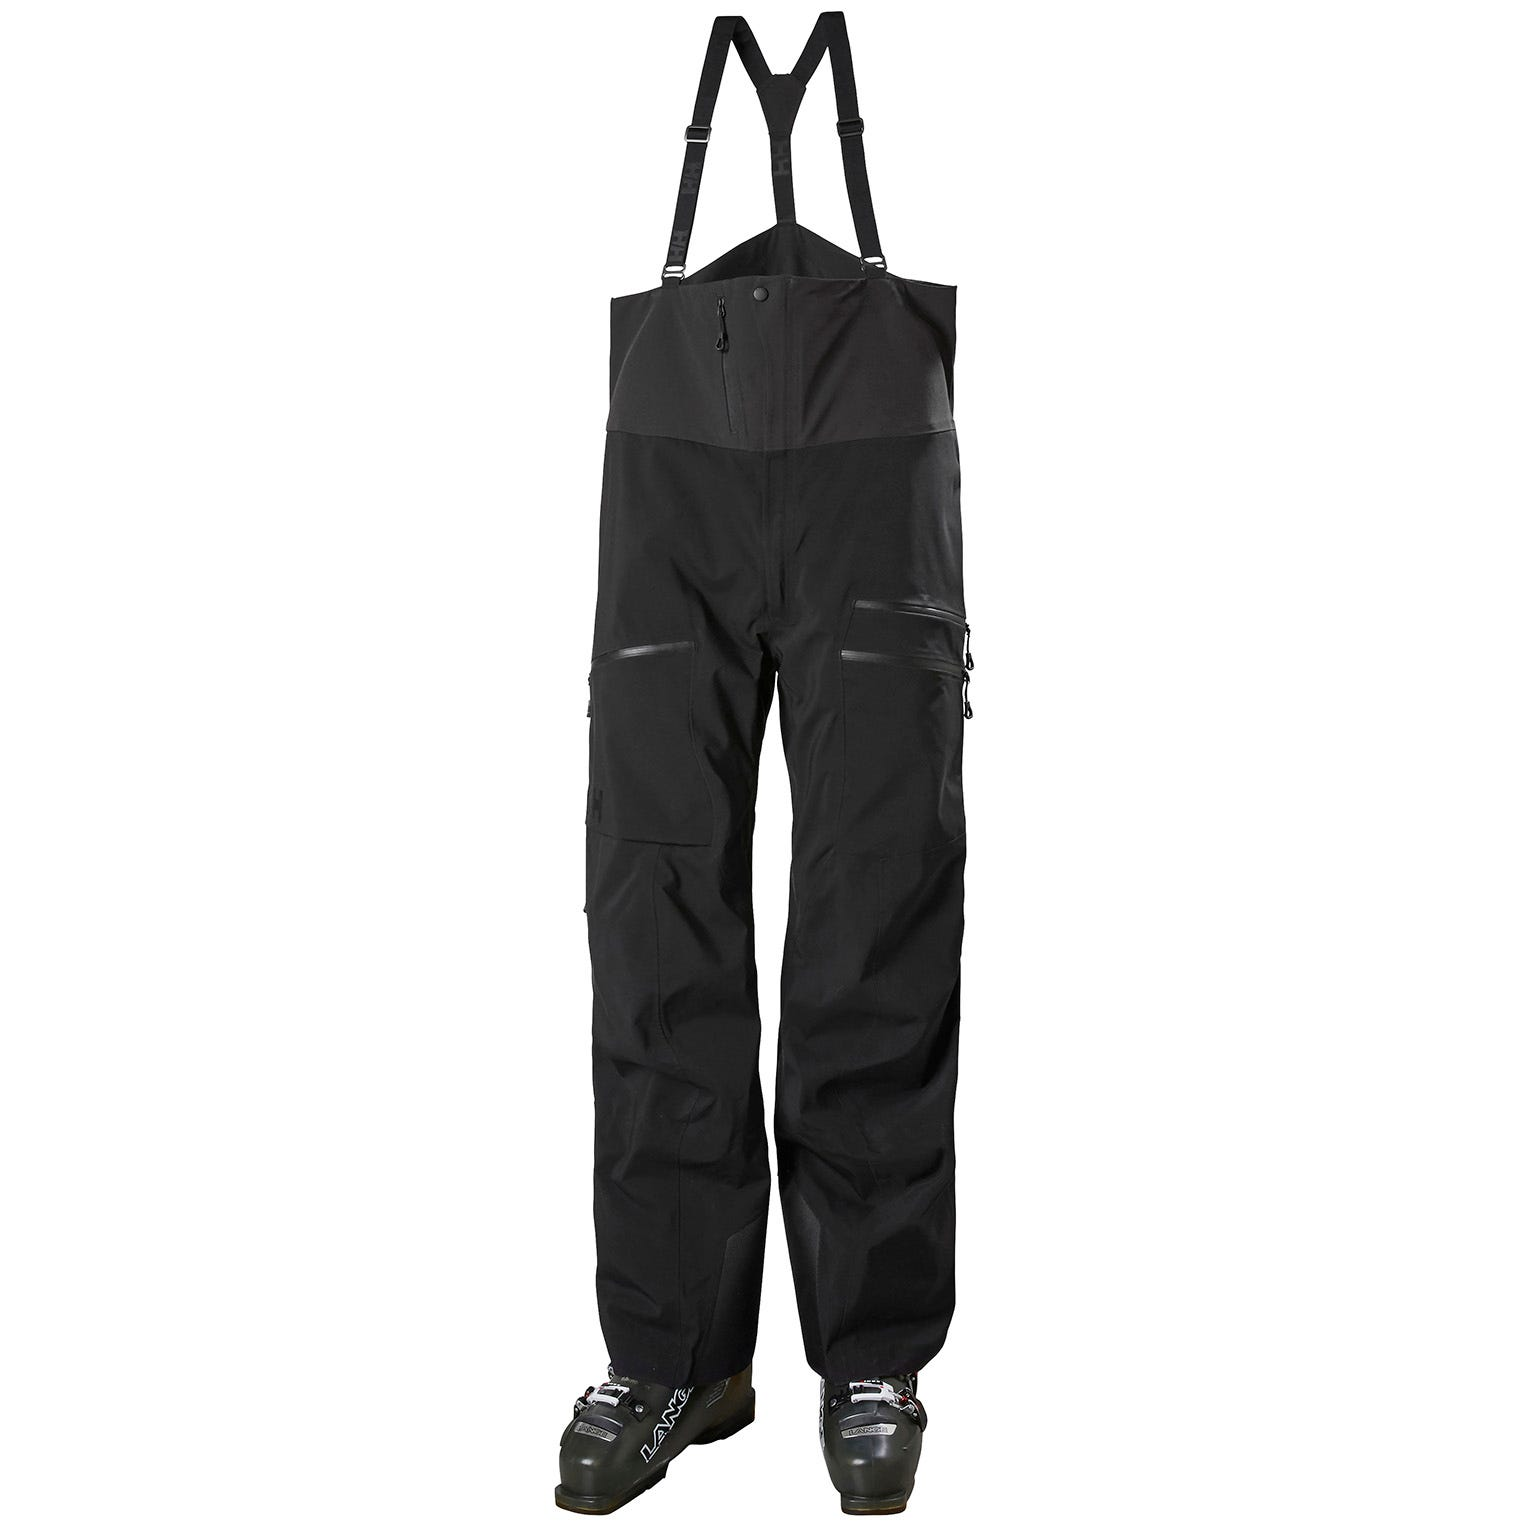 Helly Hansen Mens Odin Mountain 3l Shell Bib Hiking Trouser Black M